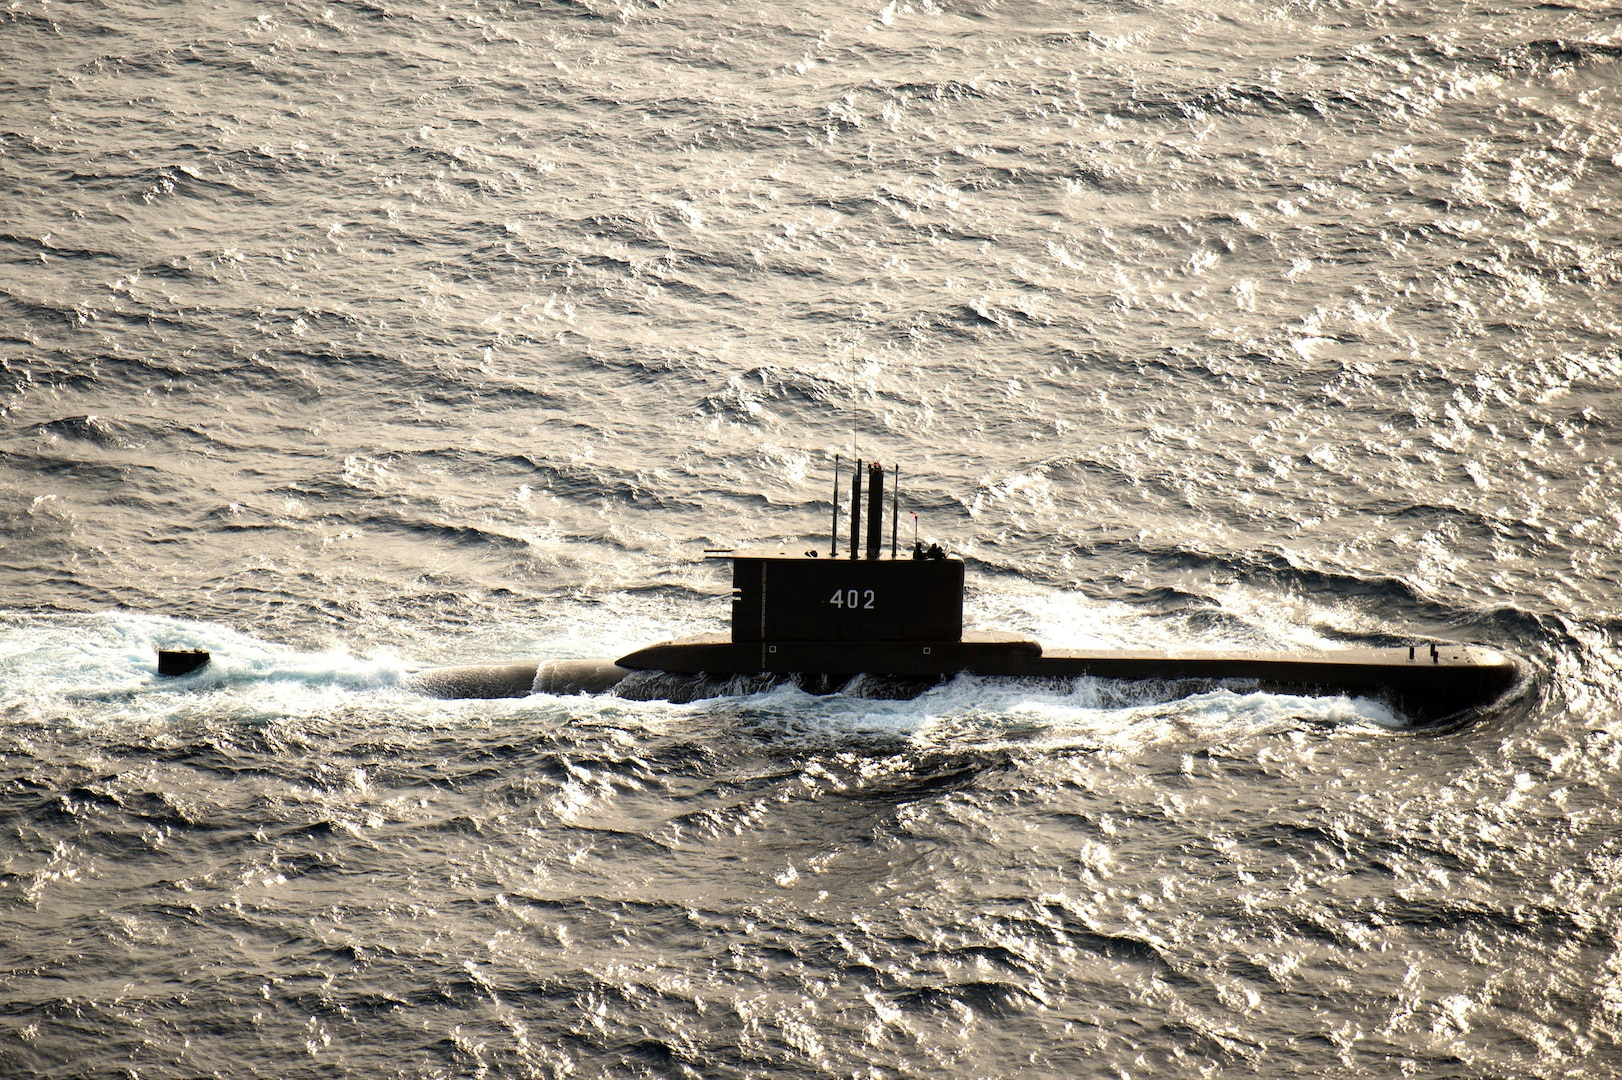 A submarine moves through the water.